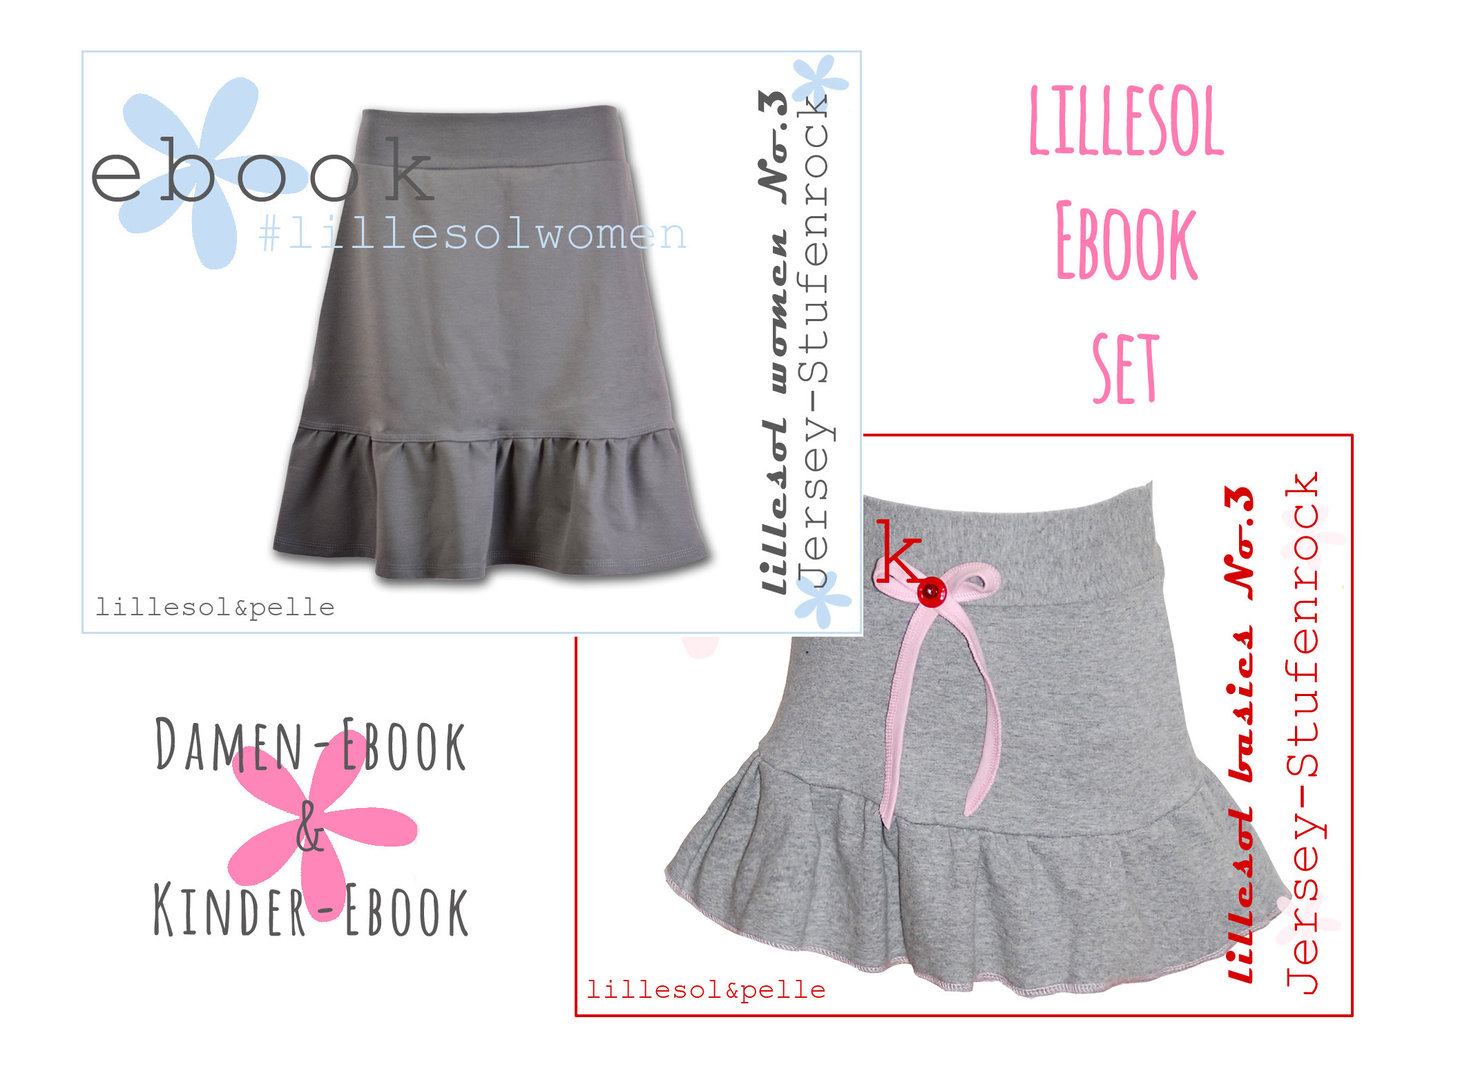 lillesol ebook set basic No.3 und women No.3